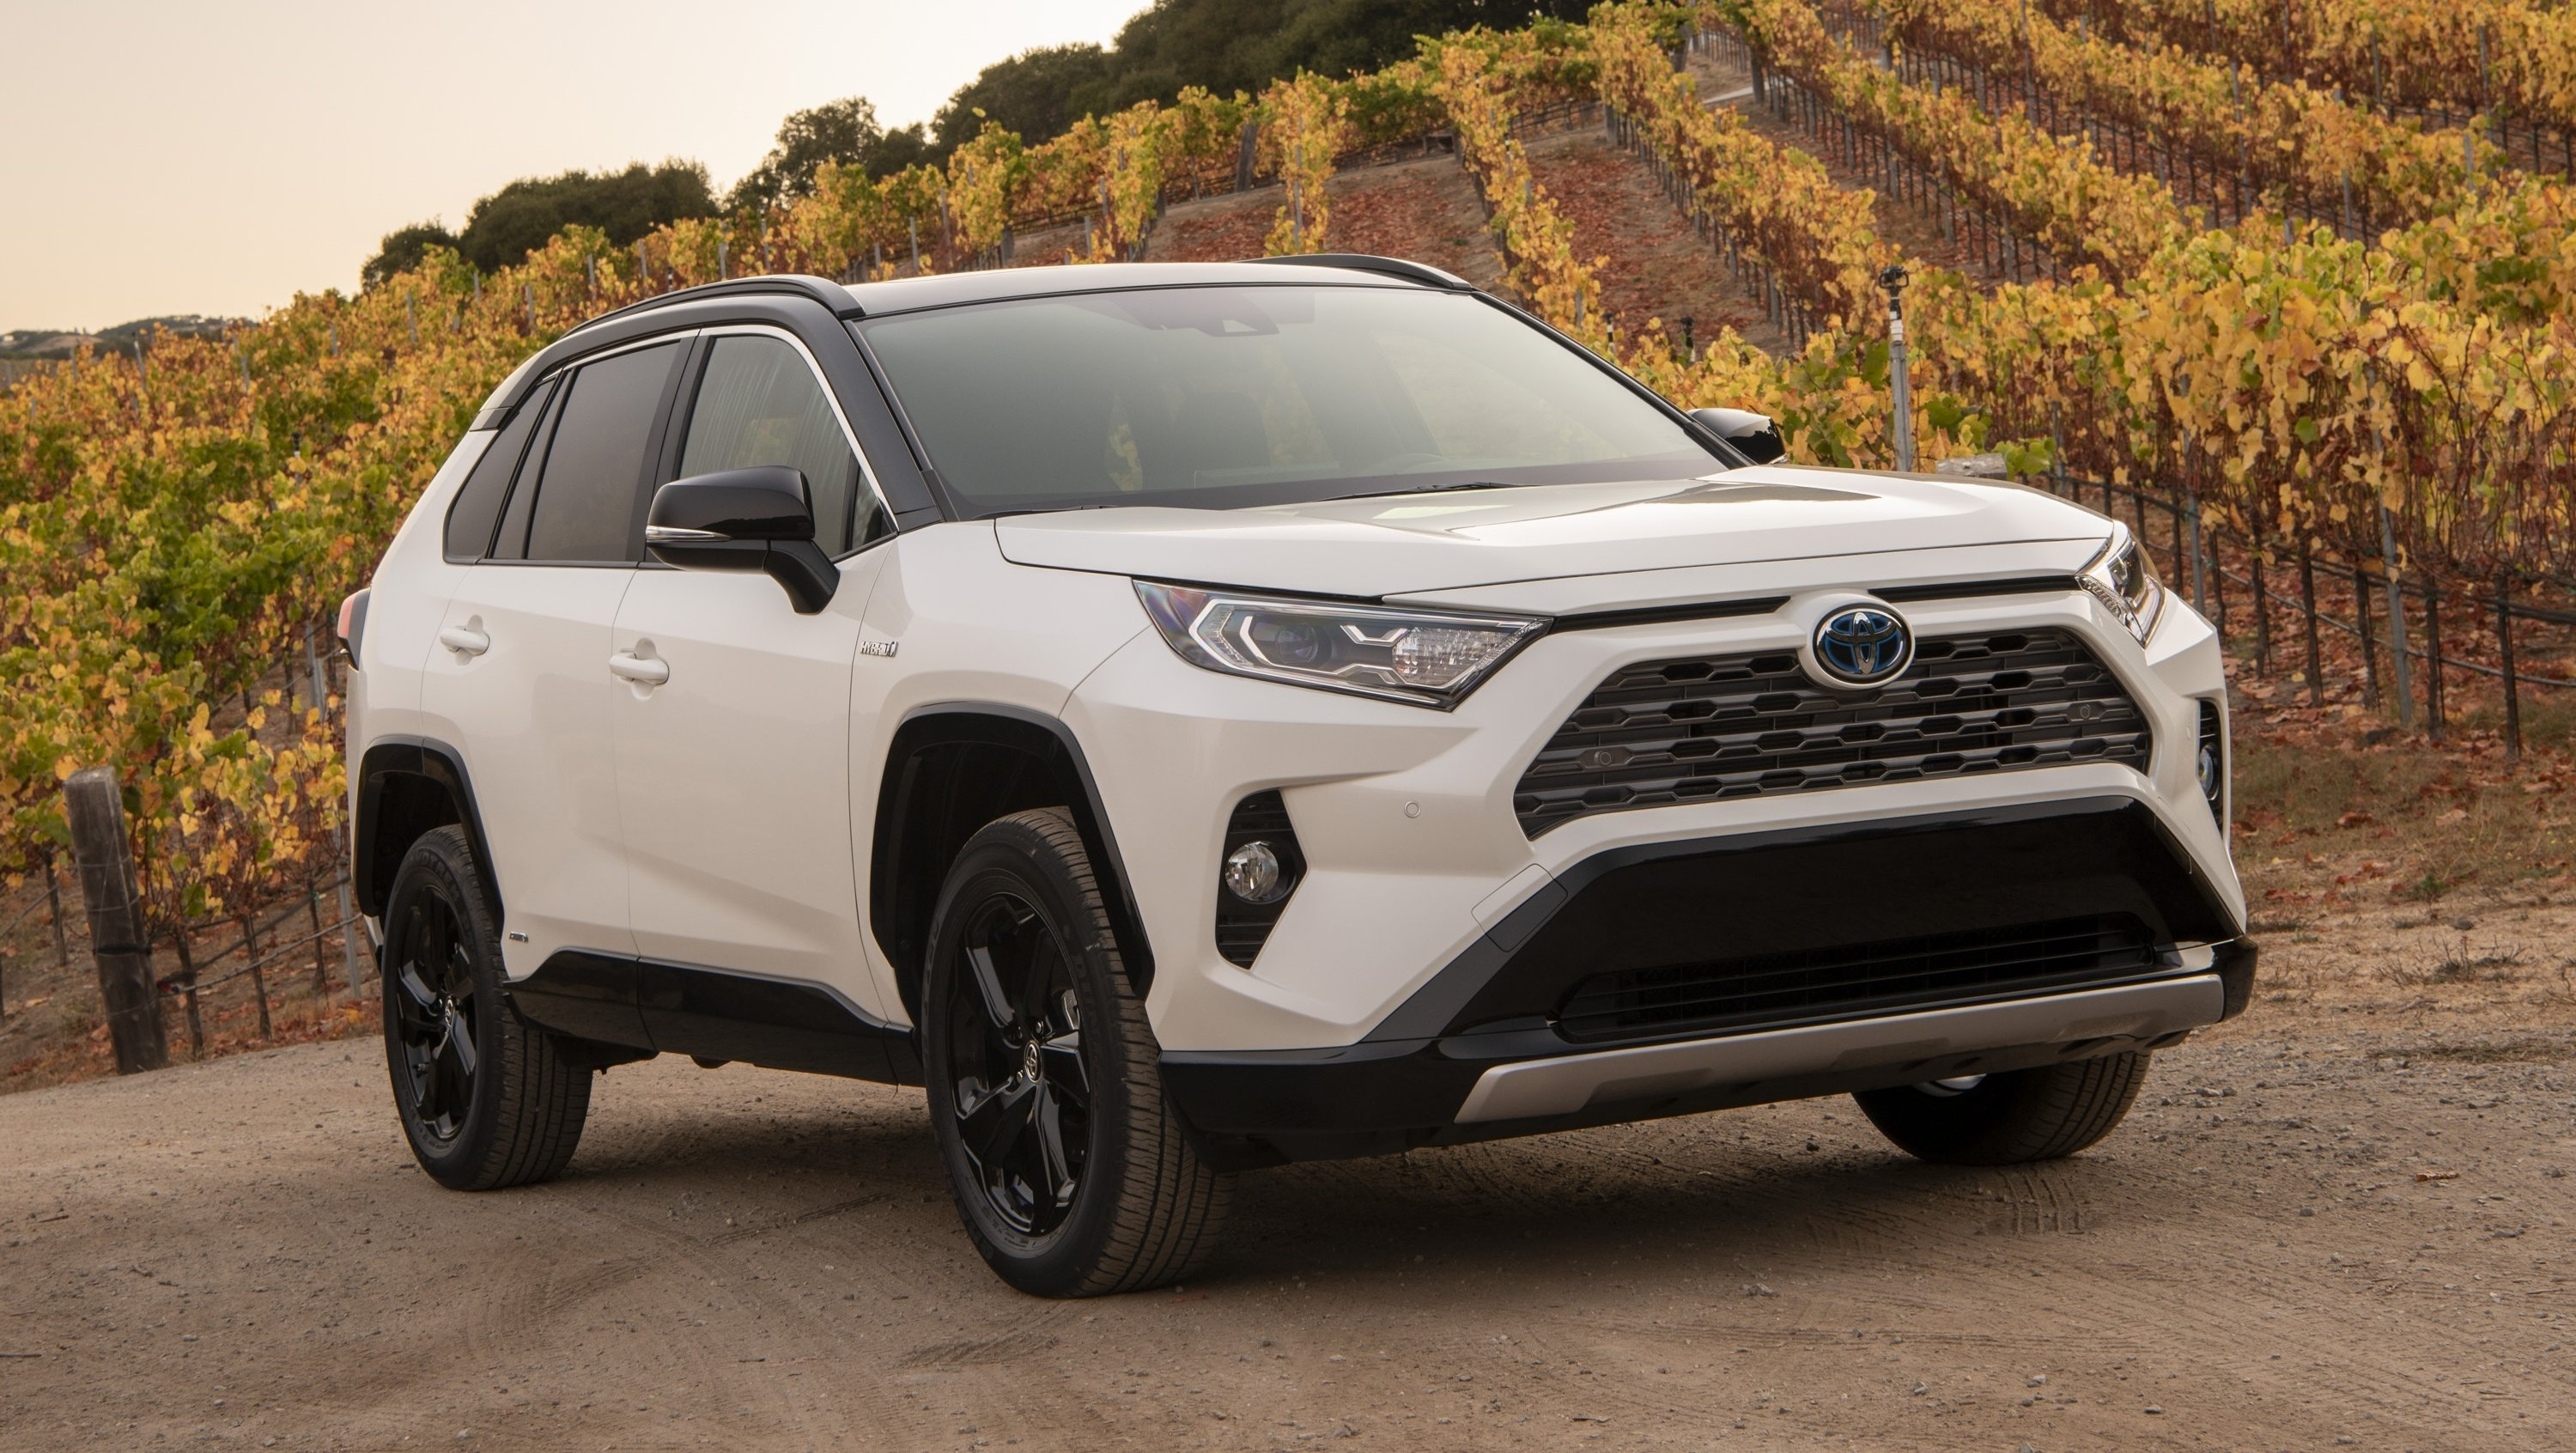 862a0ff923 2019 Toyota RAV4 – Quirks and Features – Automotivetestdrivers.com ...